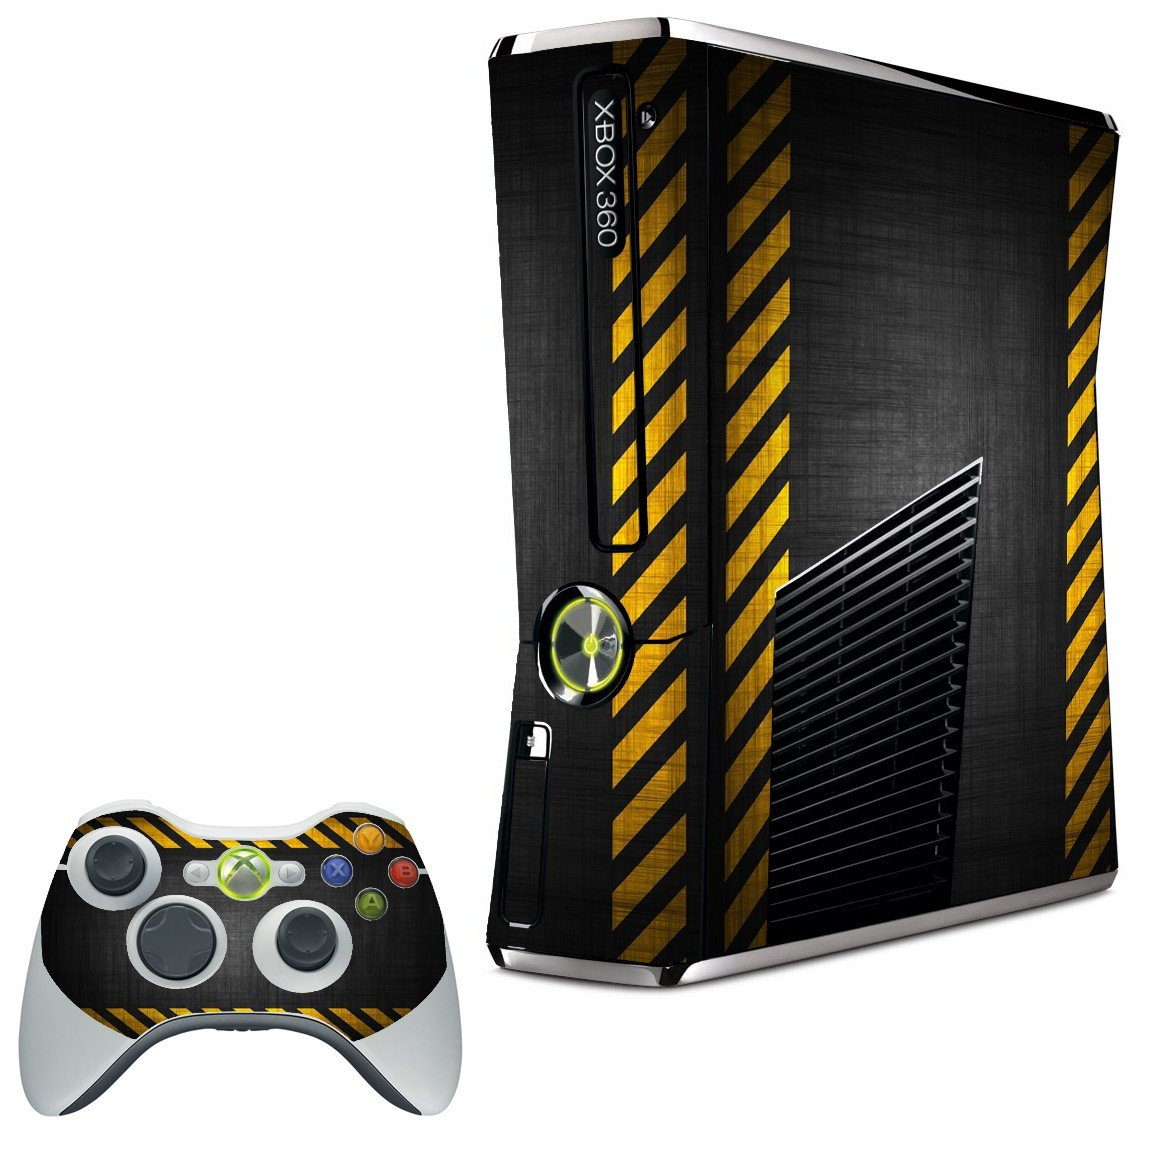 BLACK CAUTION BORDER XBOX 360 SLIM GAME CONSOLE SKIN